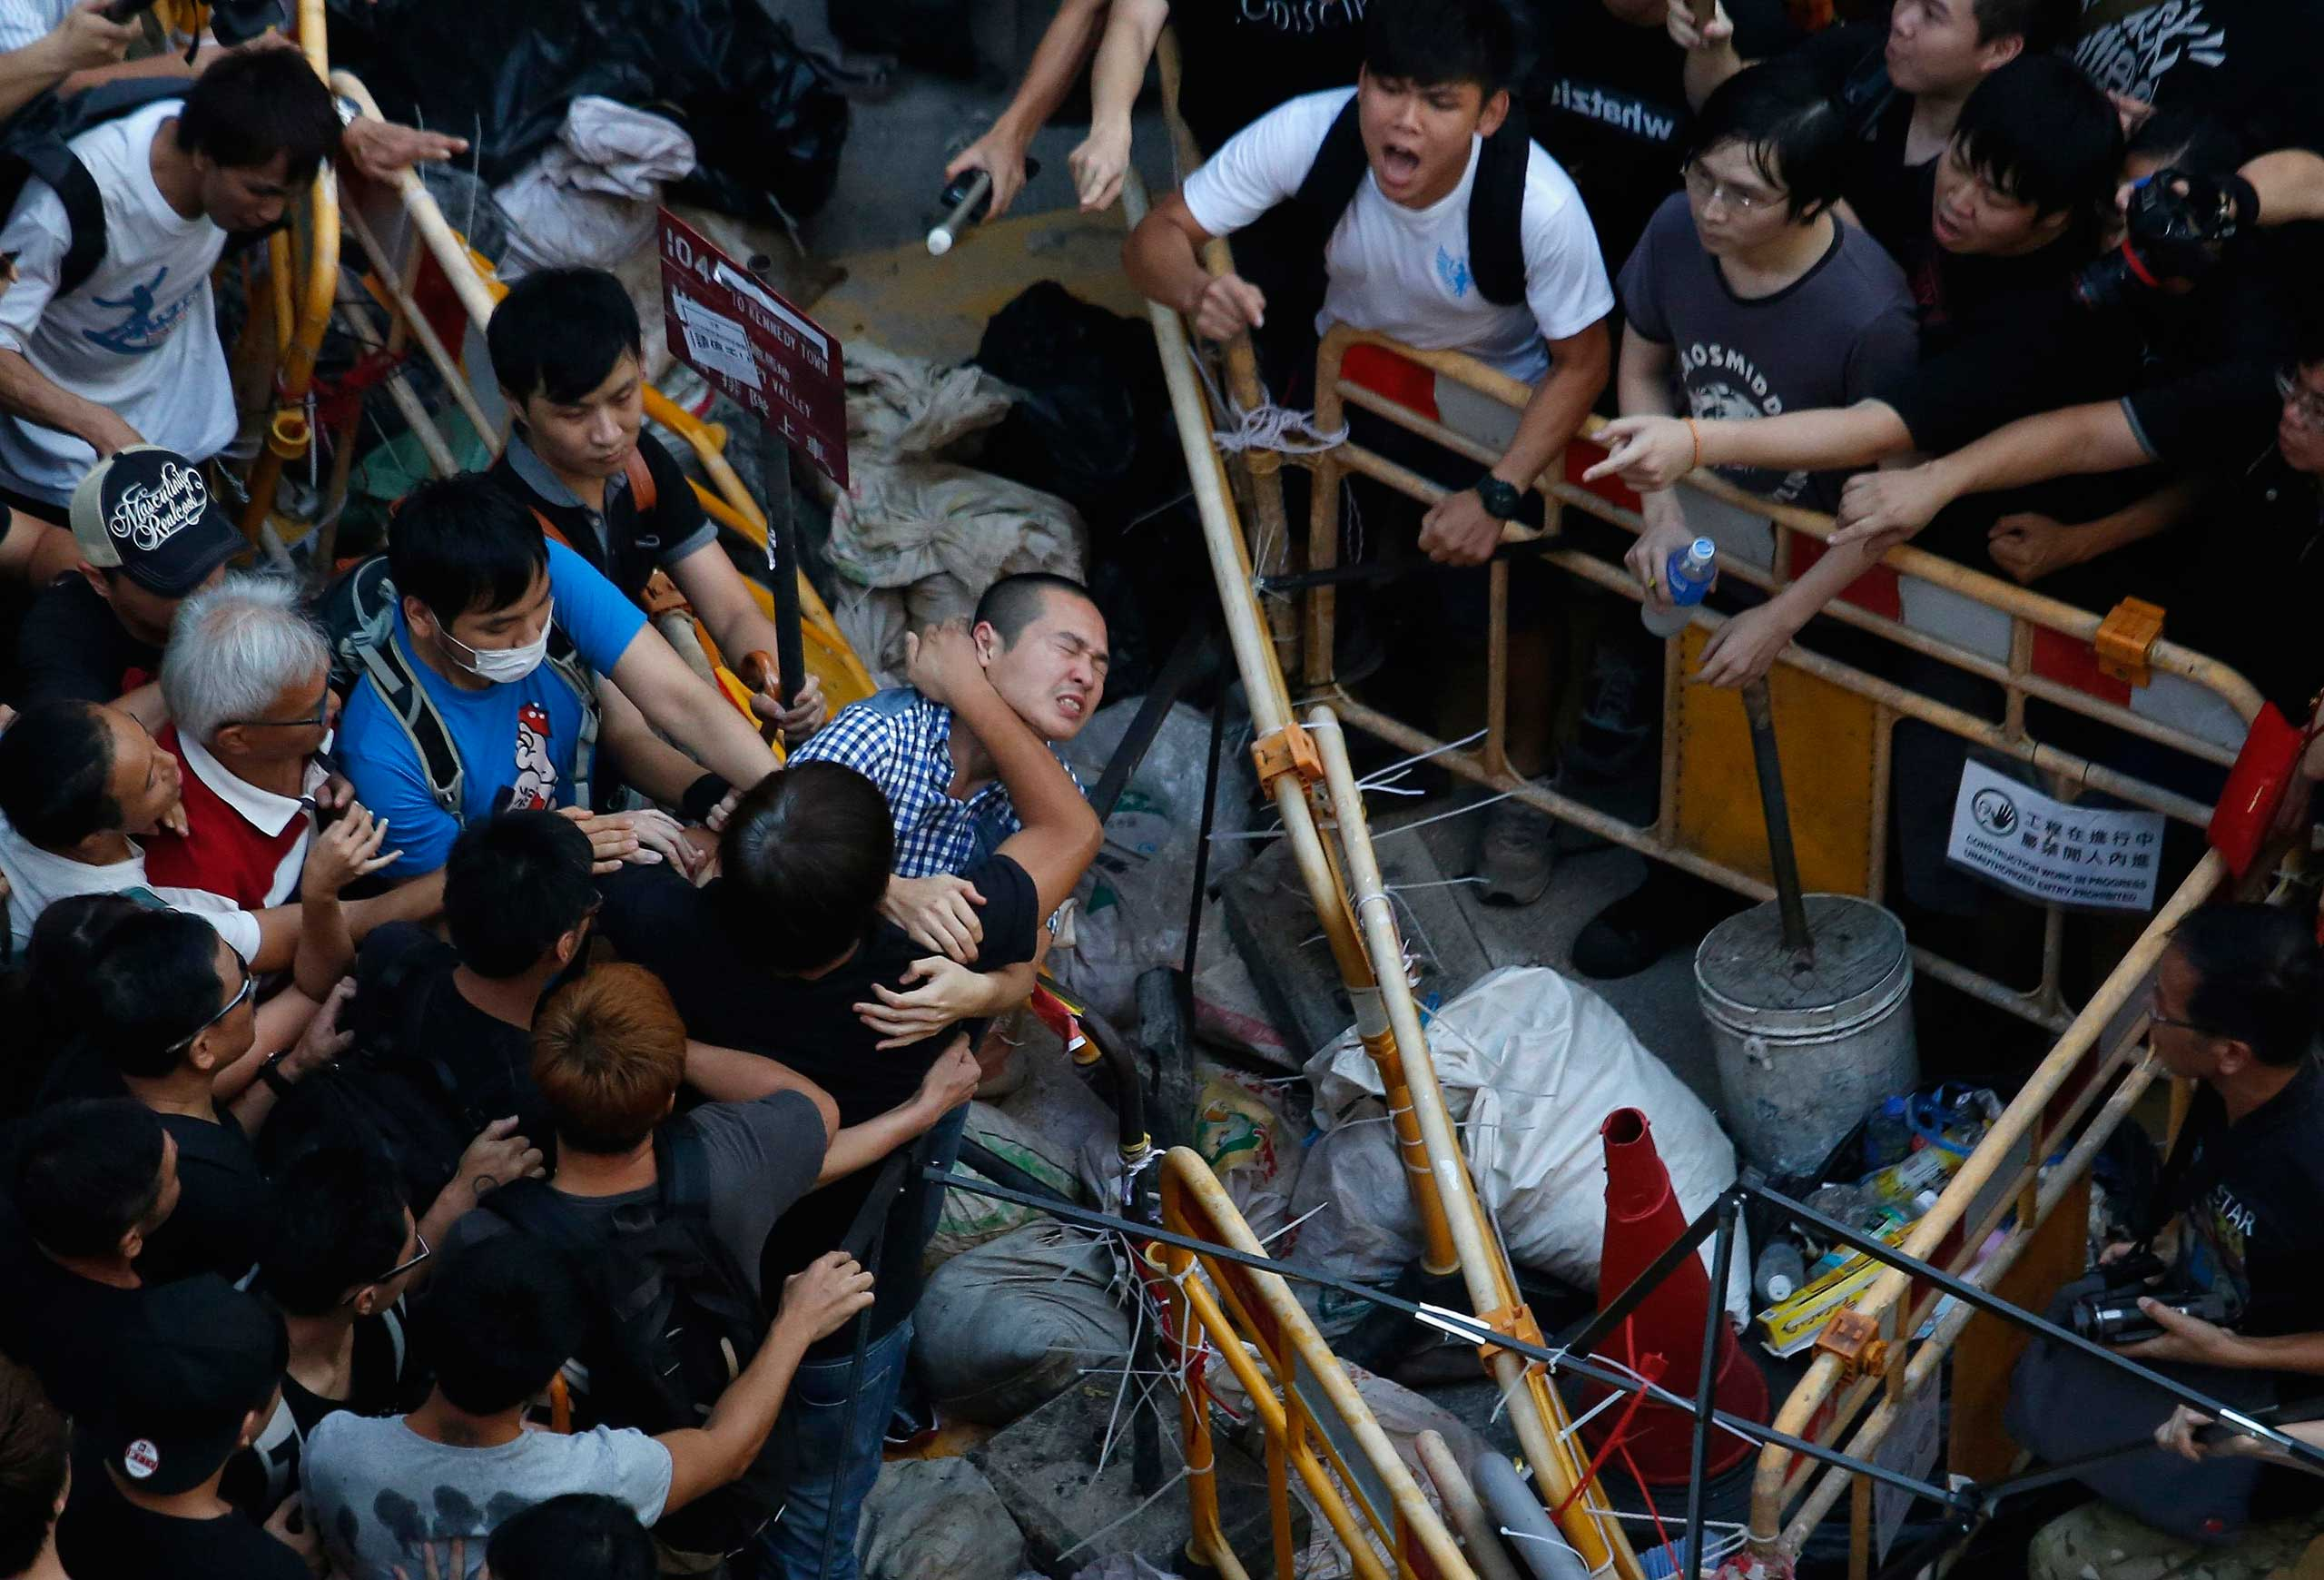 People try to prevent a man from removing a barricade set up by pro-democracy protesters blocking a main road at Hong Kong's shopping Mongkok district Oct. 4, 2014.